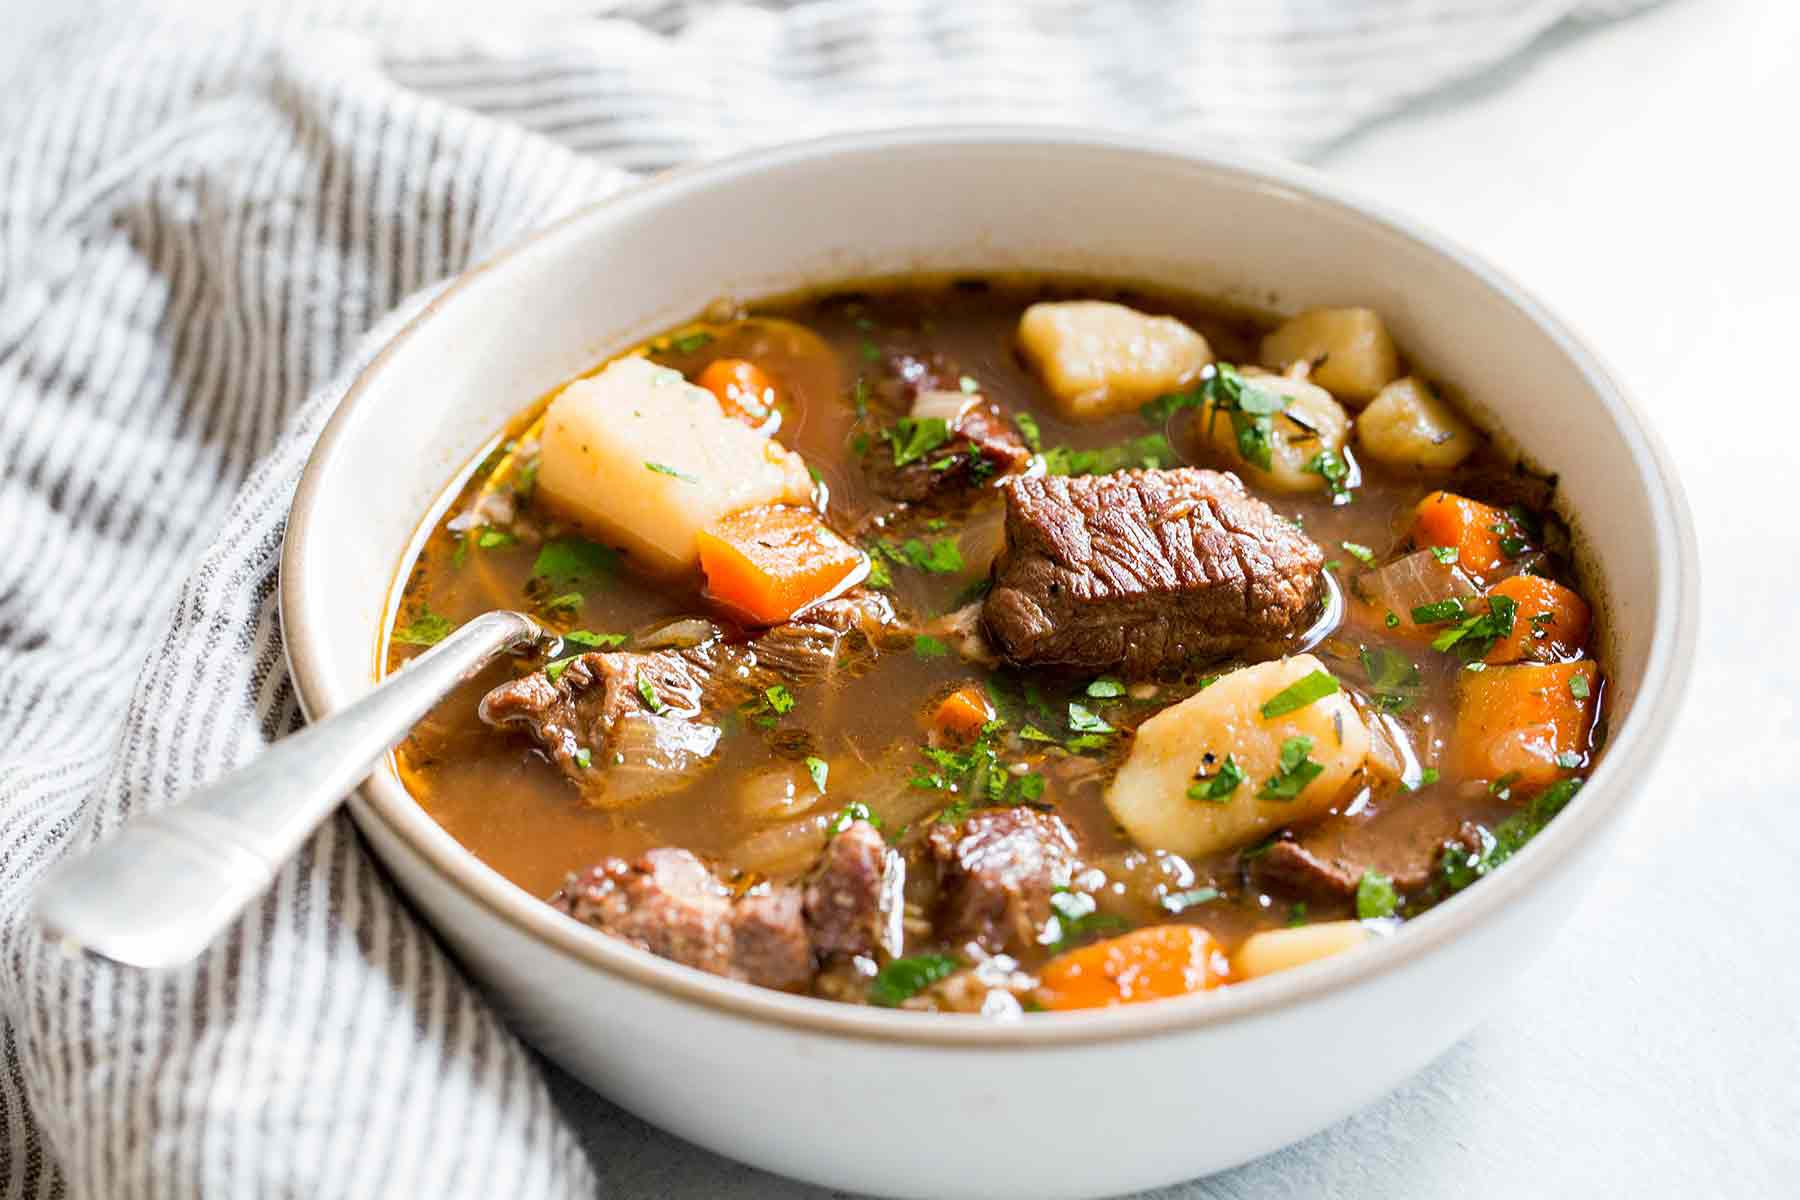 Irish stew with beef, carrots, and potatoes, Guinness and wine served in a bowl